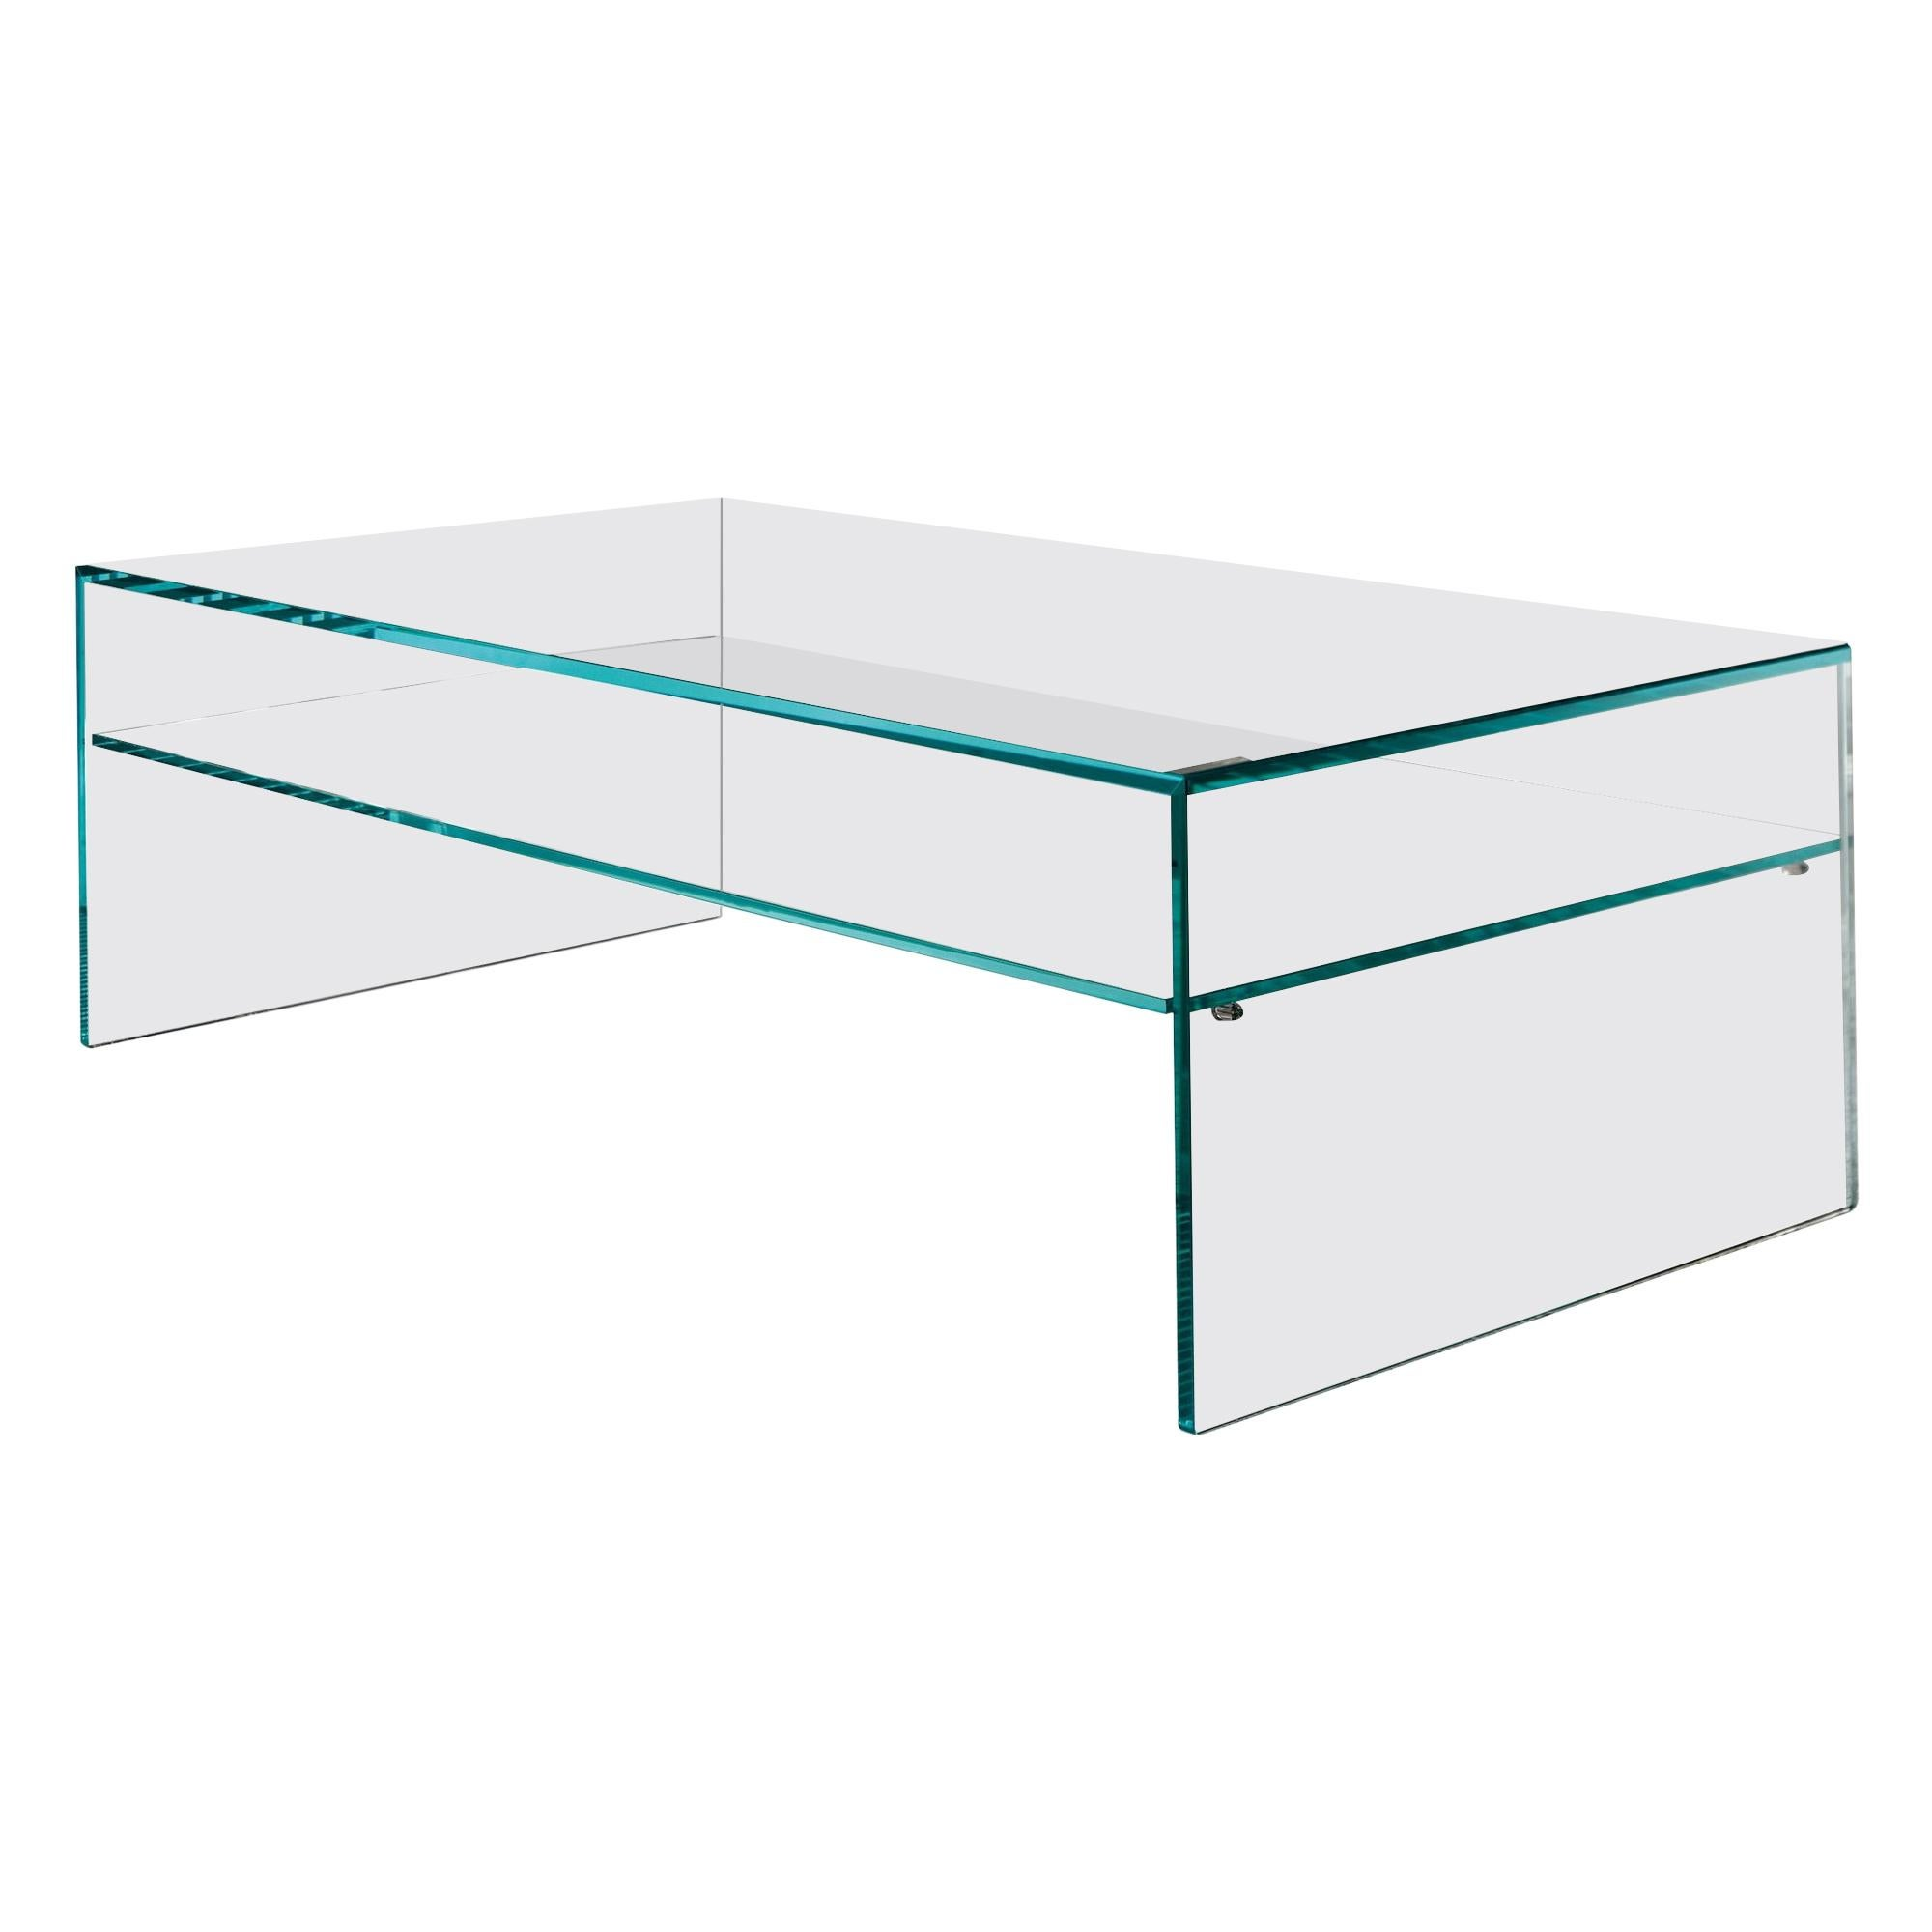 Fratina Glass Coffee Table, Designed by M.U, Made in Italy